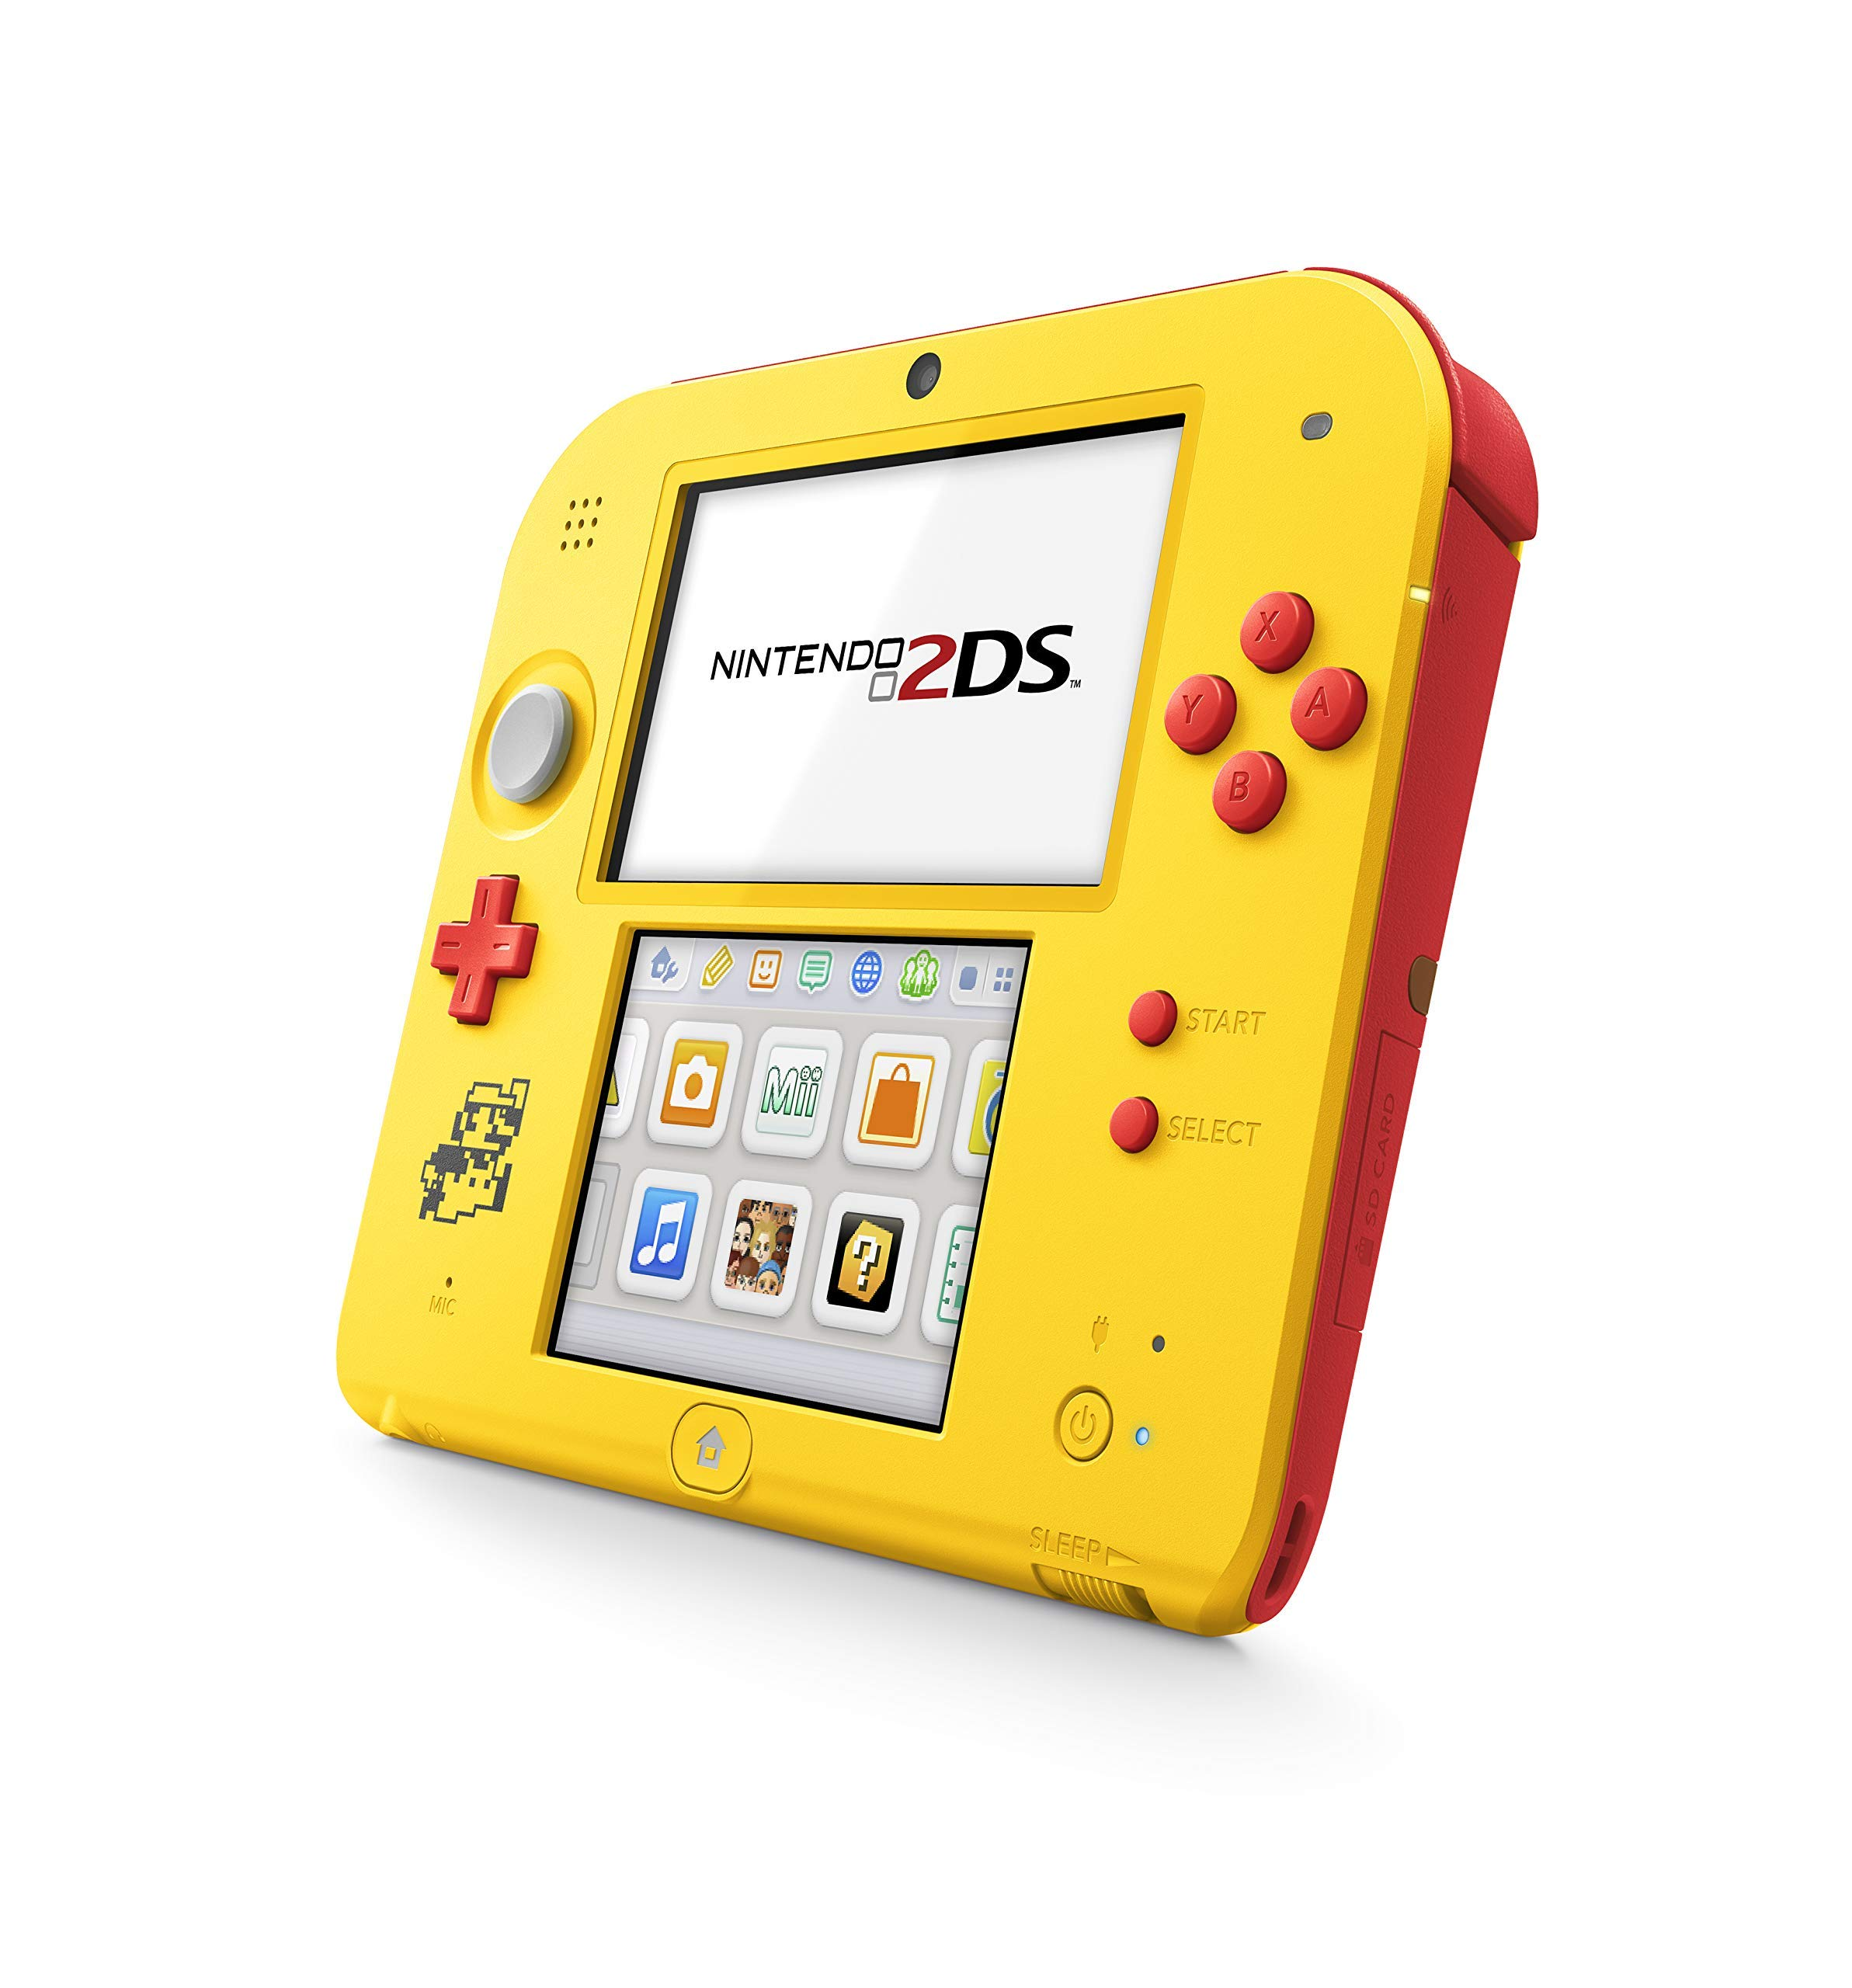 Nintendo 2DS Super Mario Maker Edition (w/ Super Mario Maker for 3DS (Pre-Installed)) - 2DS (Renewed)